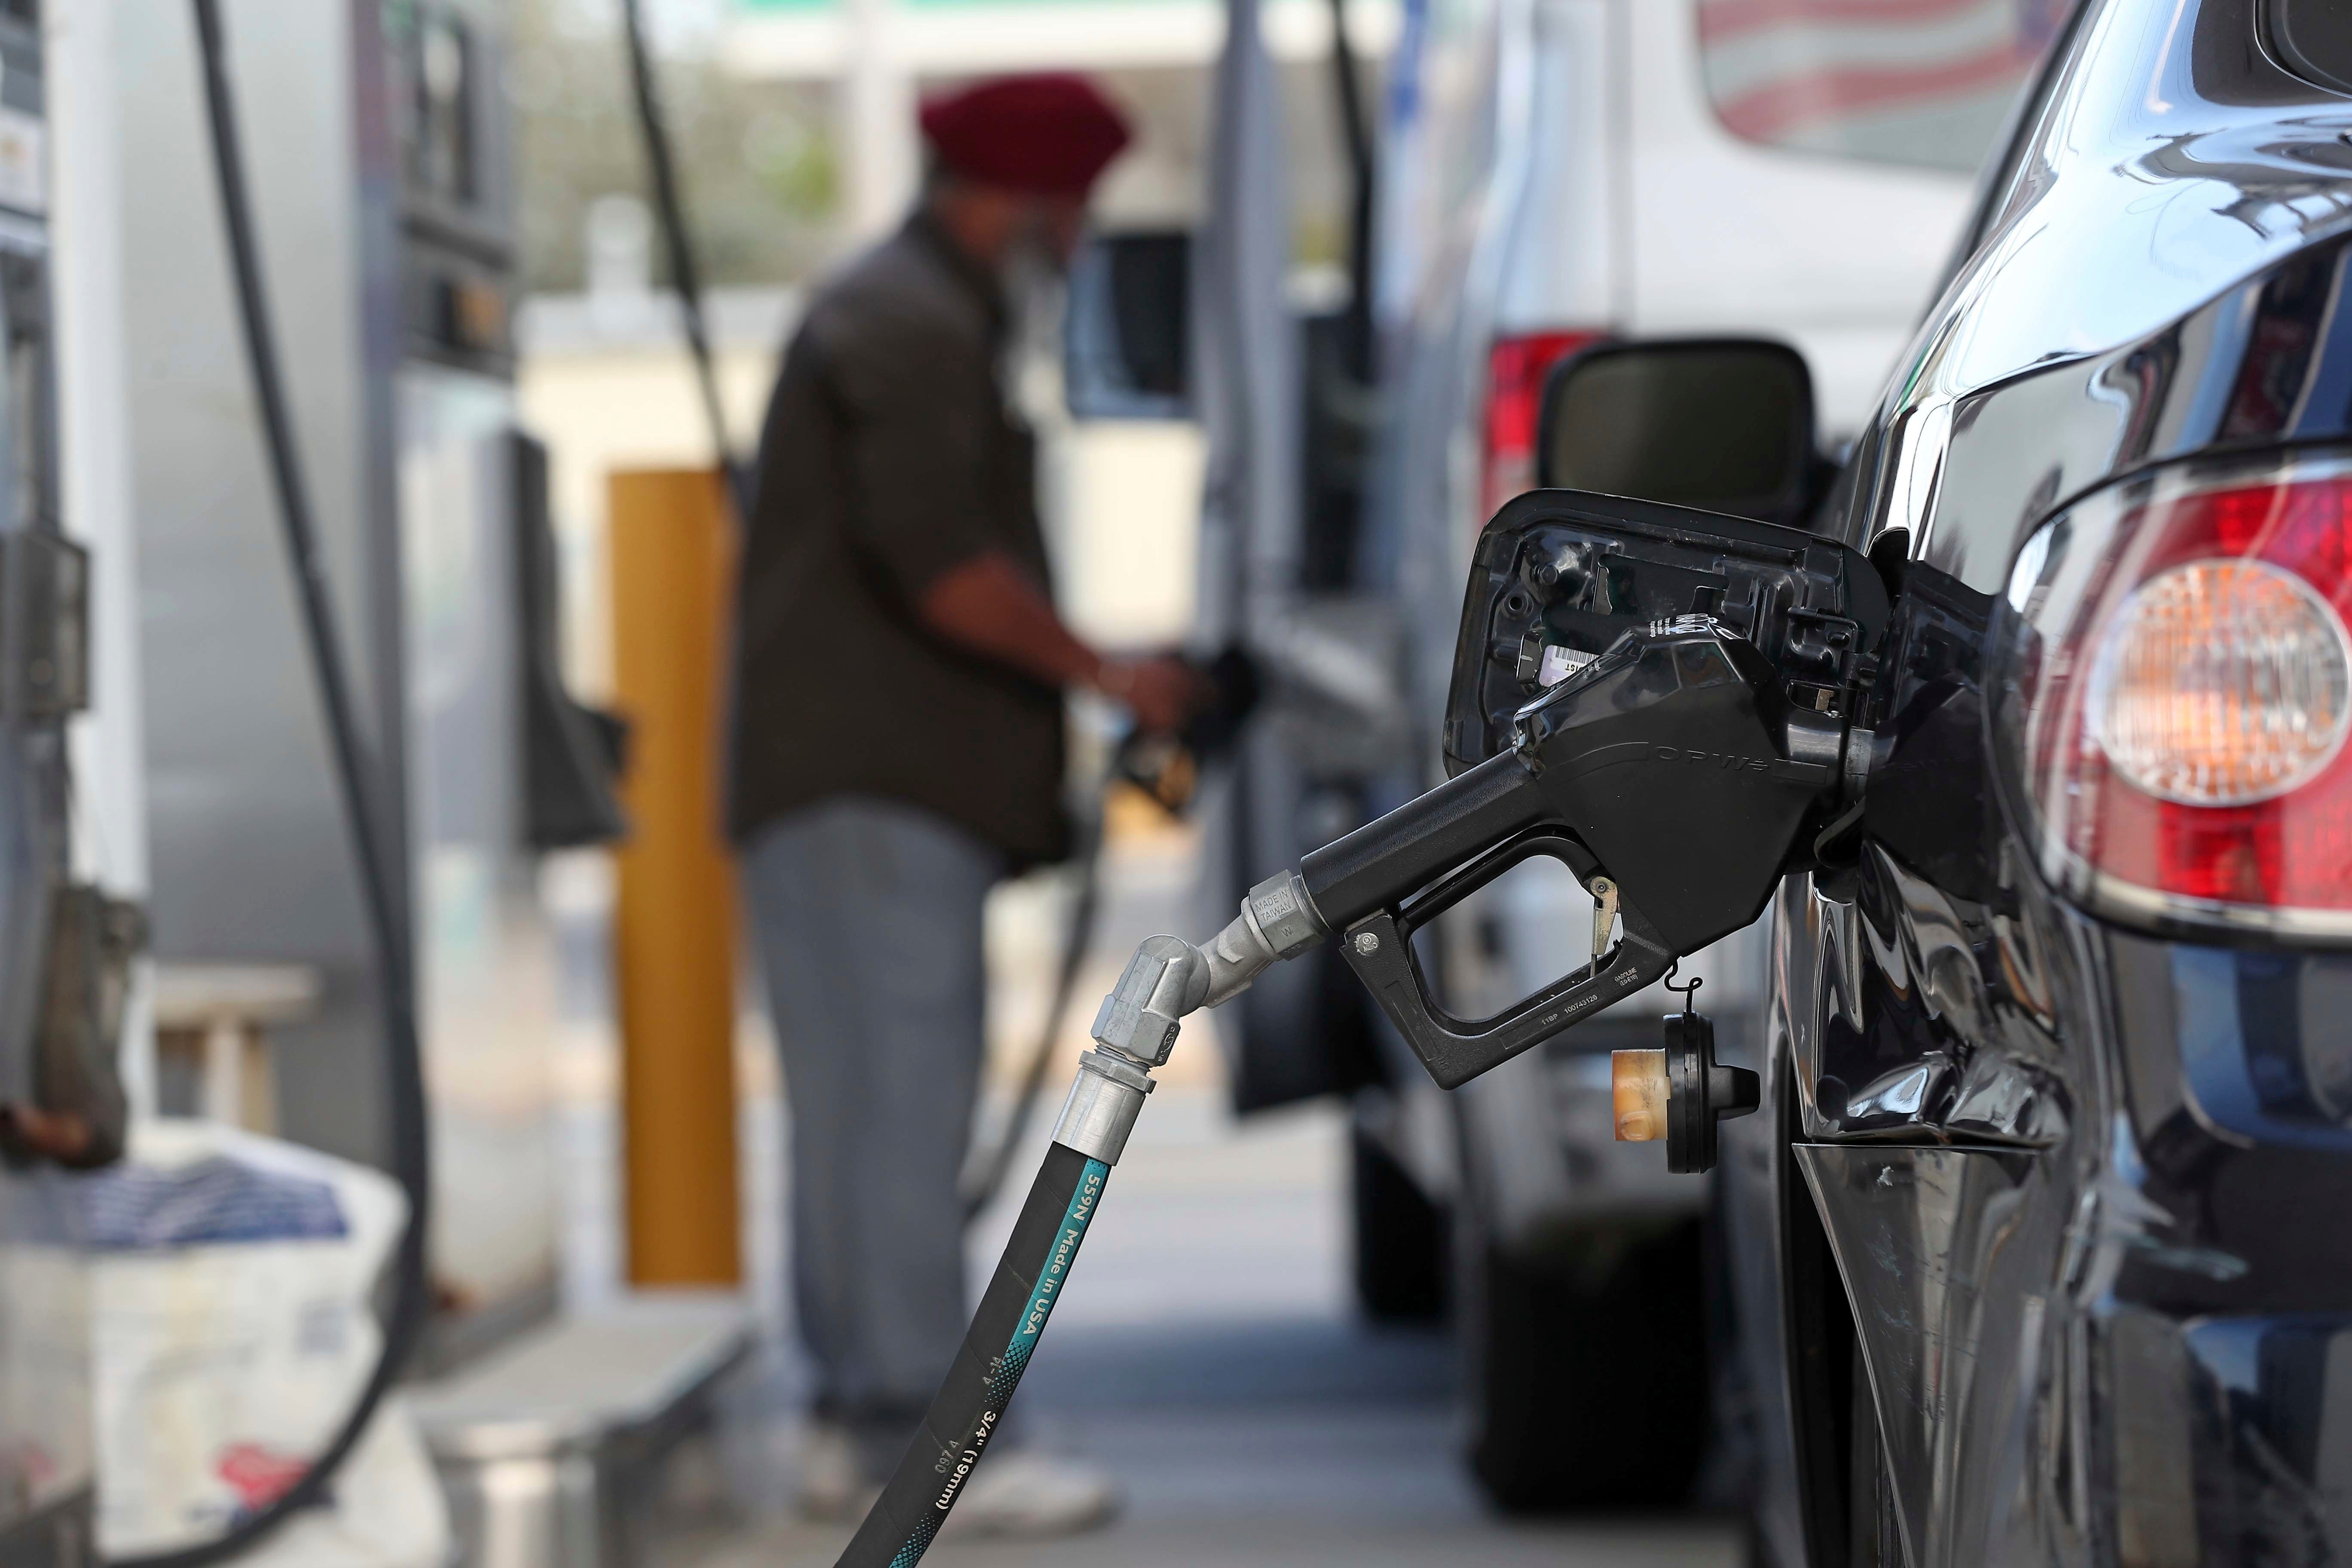 Prices up as crude oil costs increase, demand grows